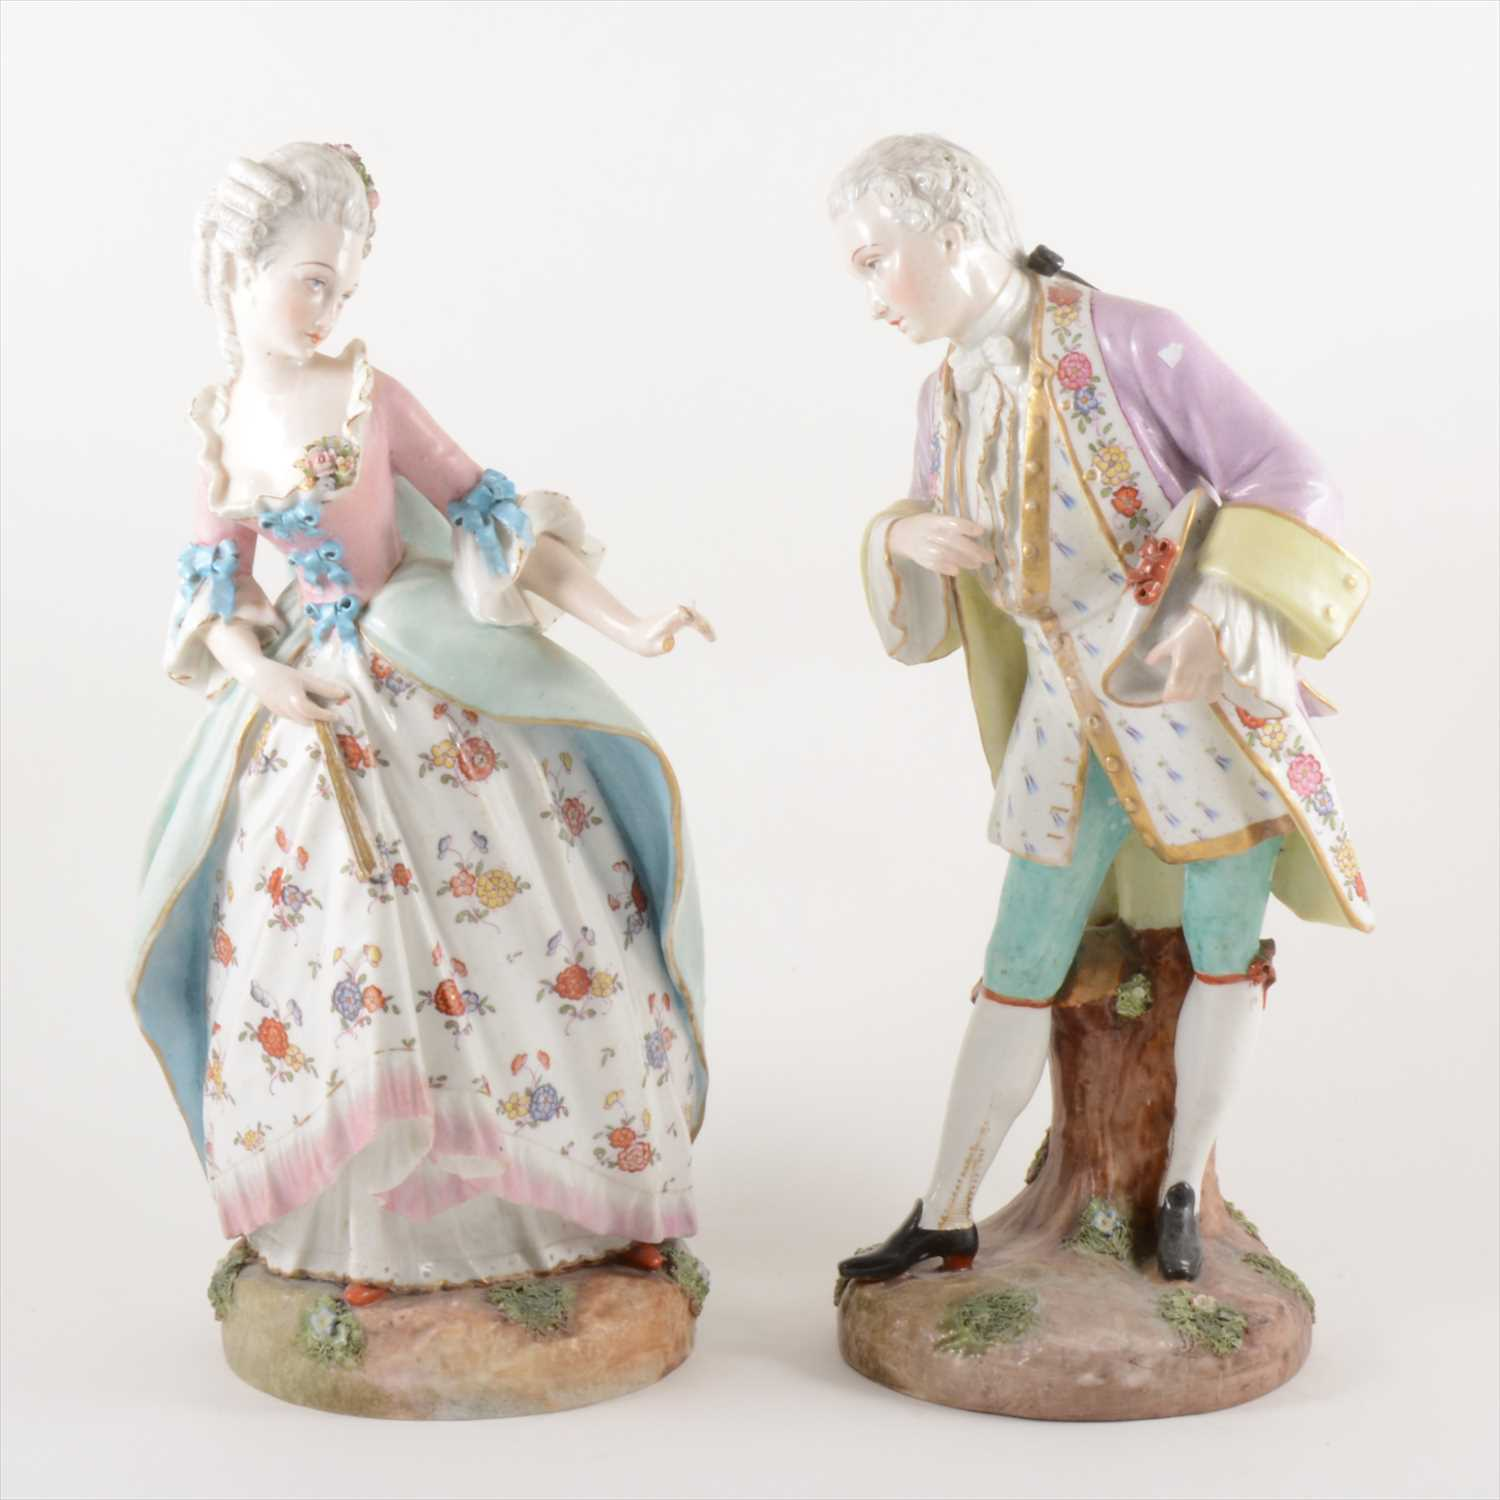 Lot 503-A pair of German porcelain figures, of a lady and gallant, Meissen Marcolini marks, 19th Century.